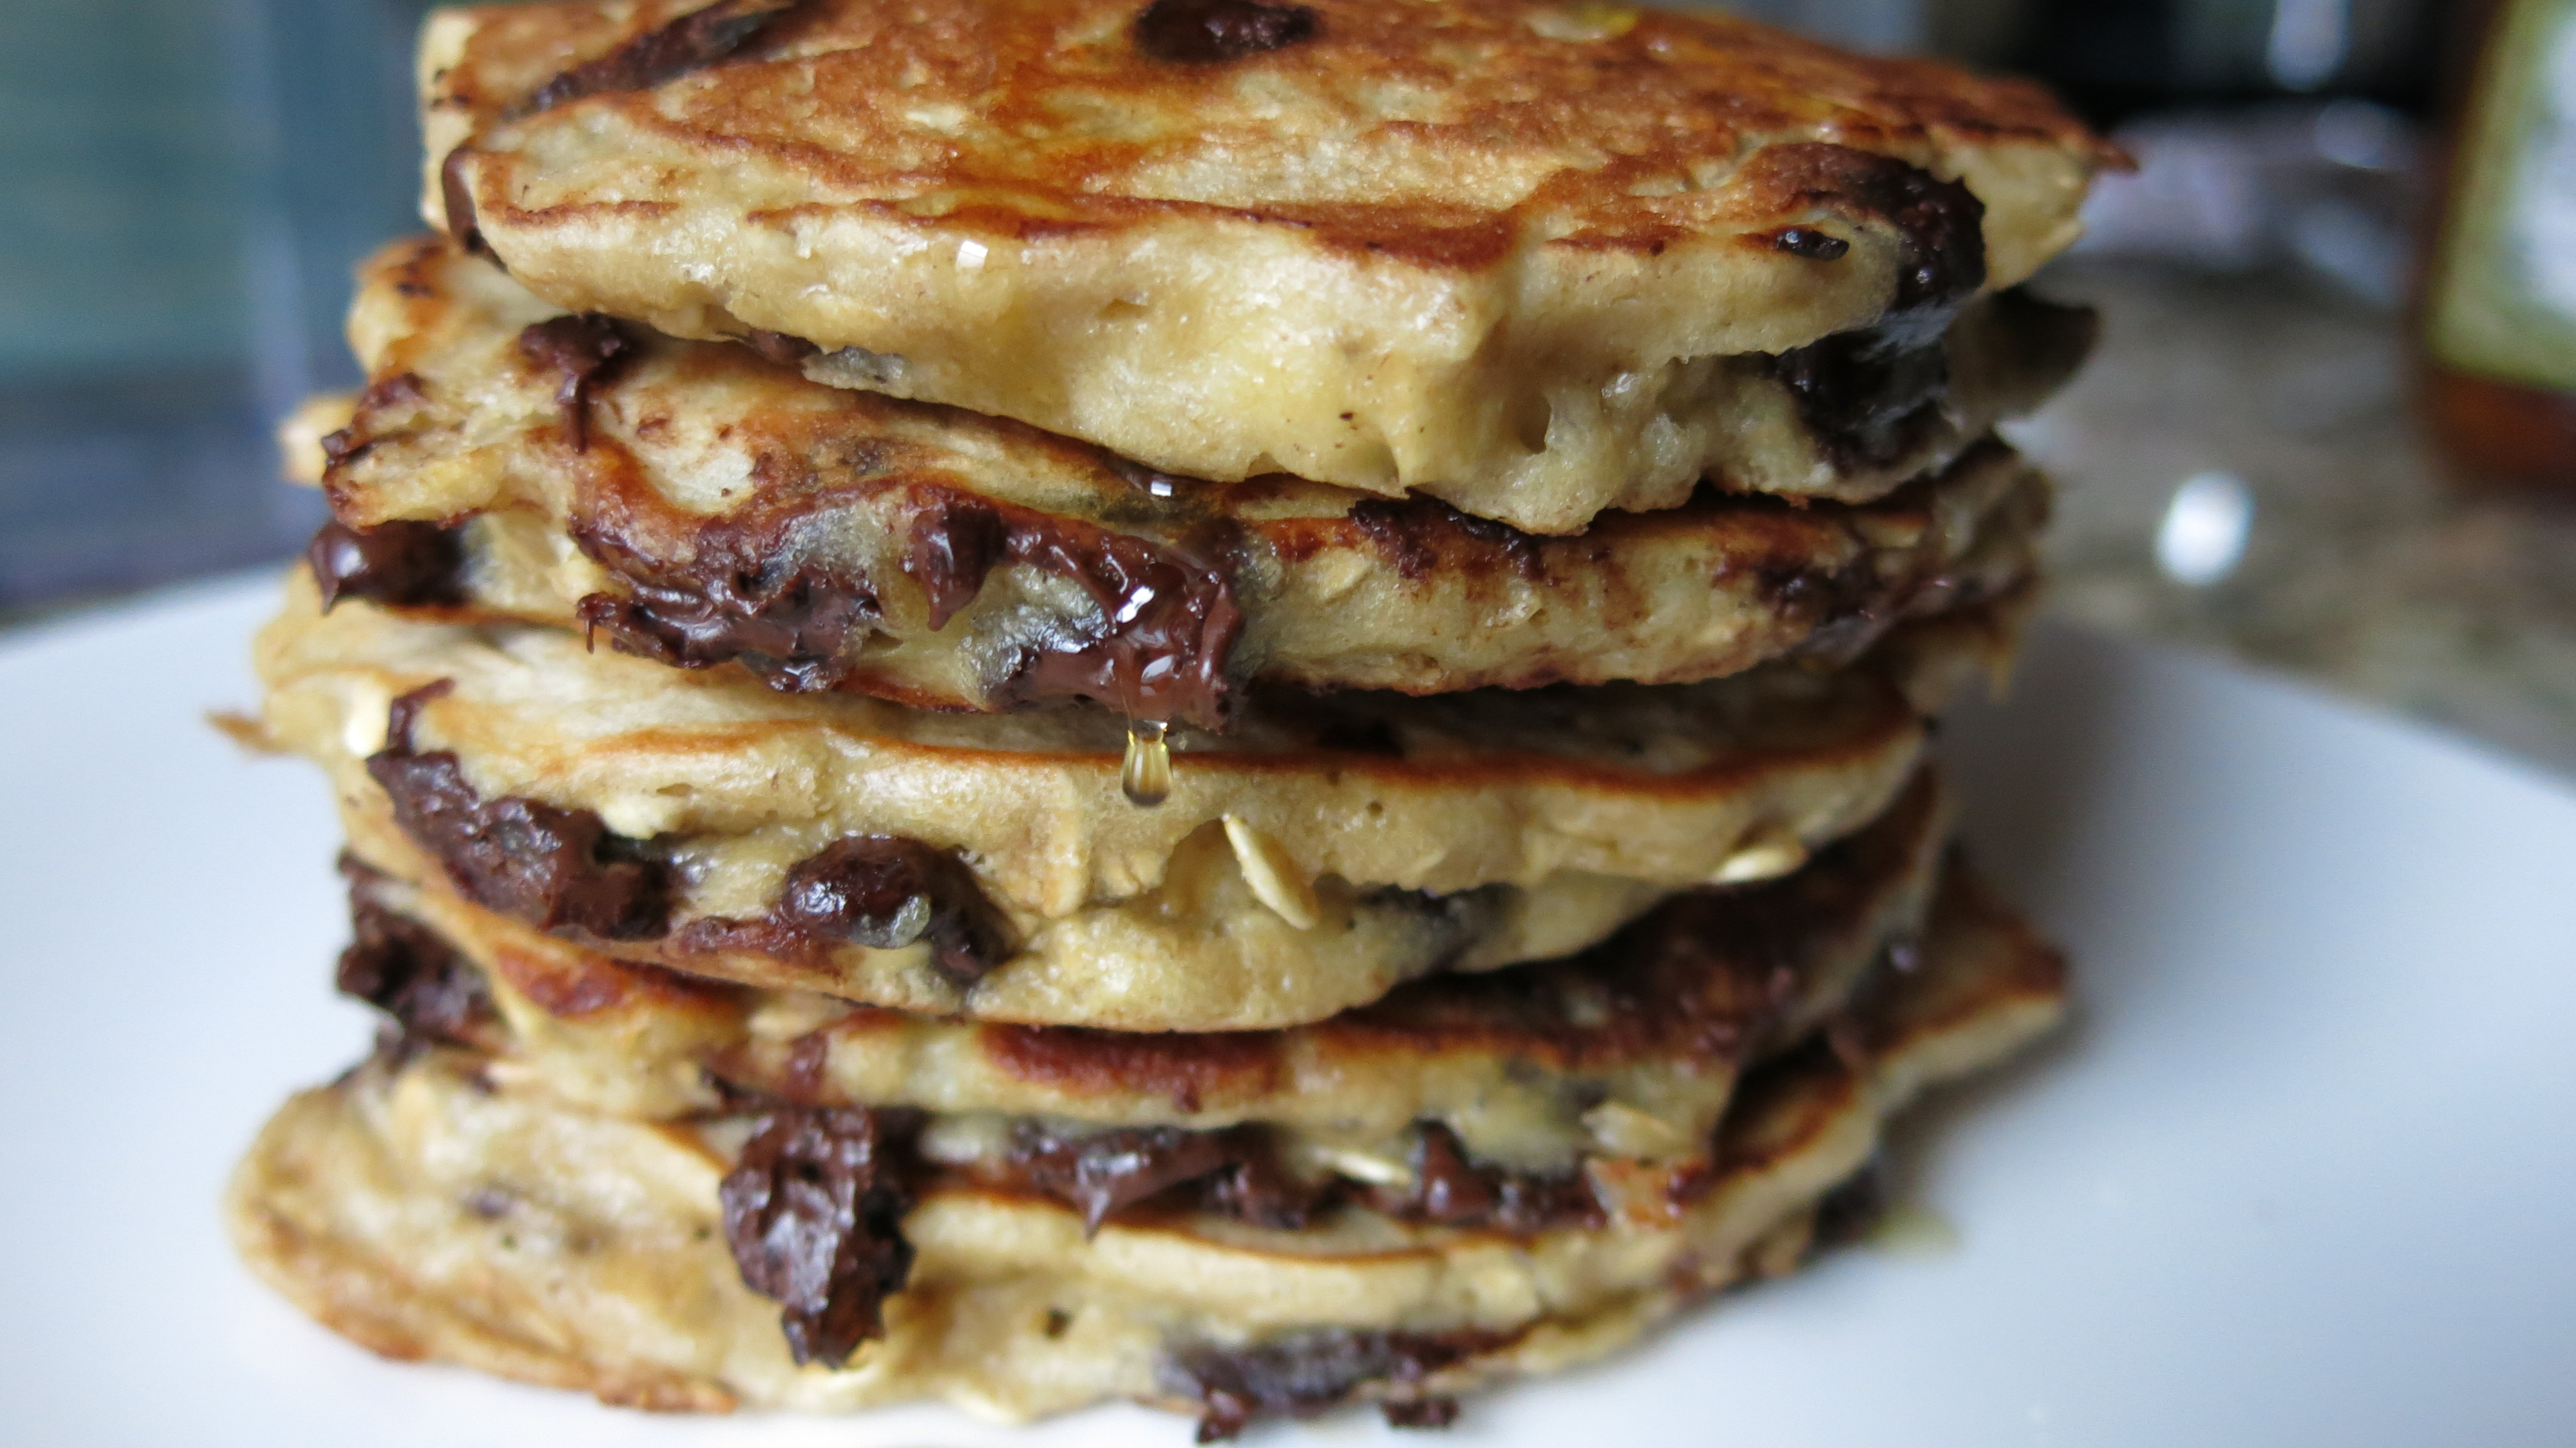 Big Chocolate Chip Pancakes